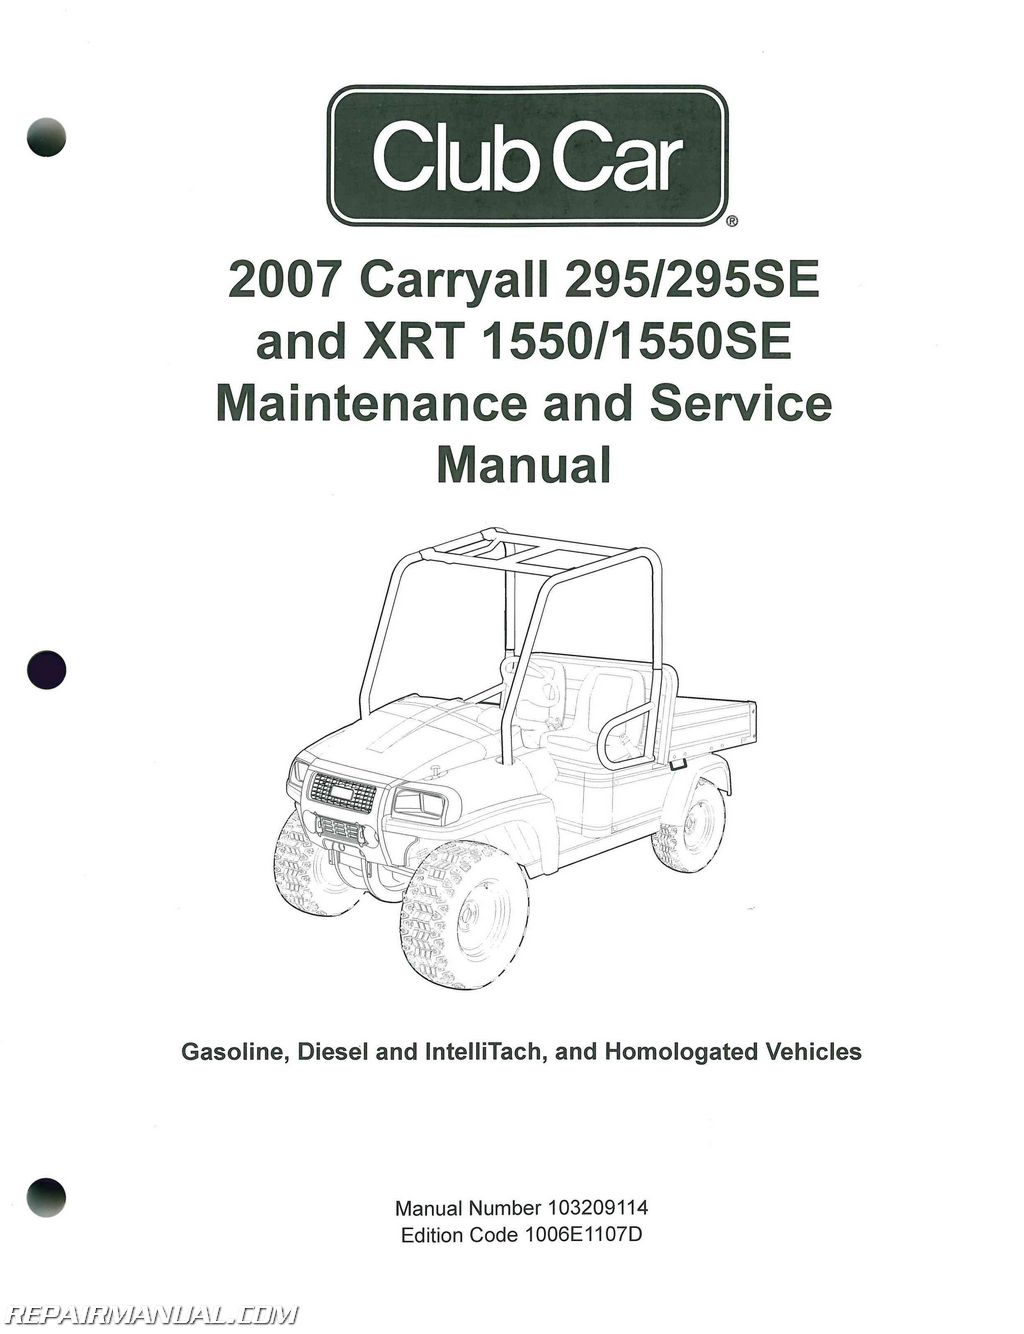 2007 club car carryall service manual 295 295se xrt 1550 1550se rh repairmanual com Club Car Kawasaki Parts Club Car Kawasaki Engine Diagram